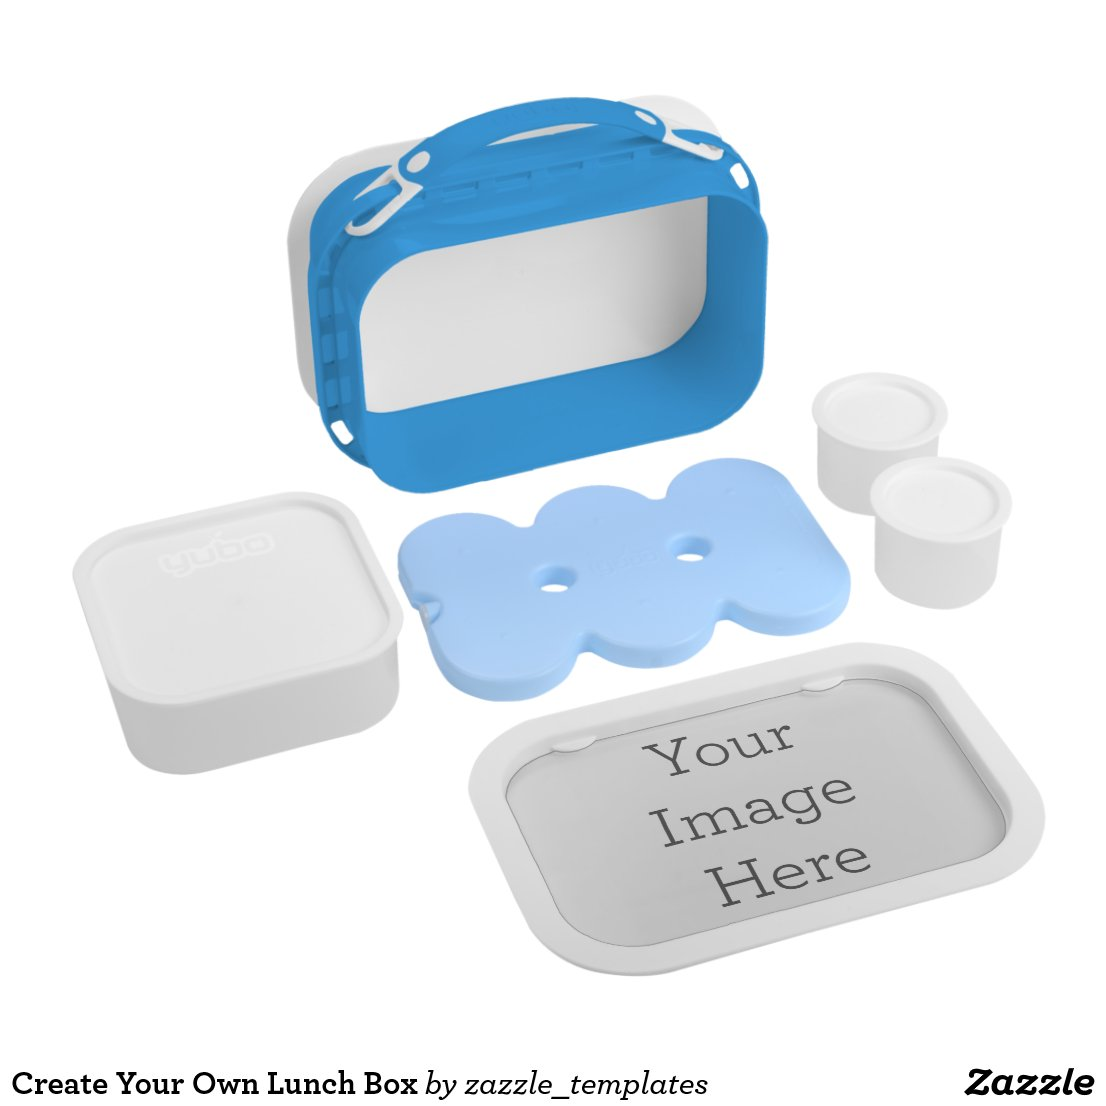 Create Your Own Lunch Box